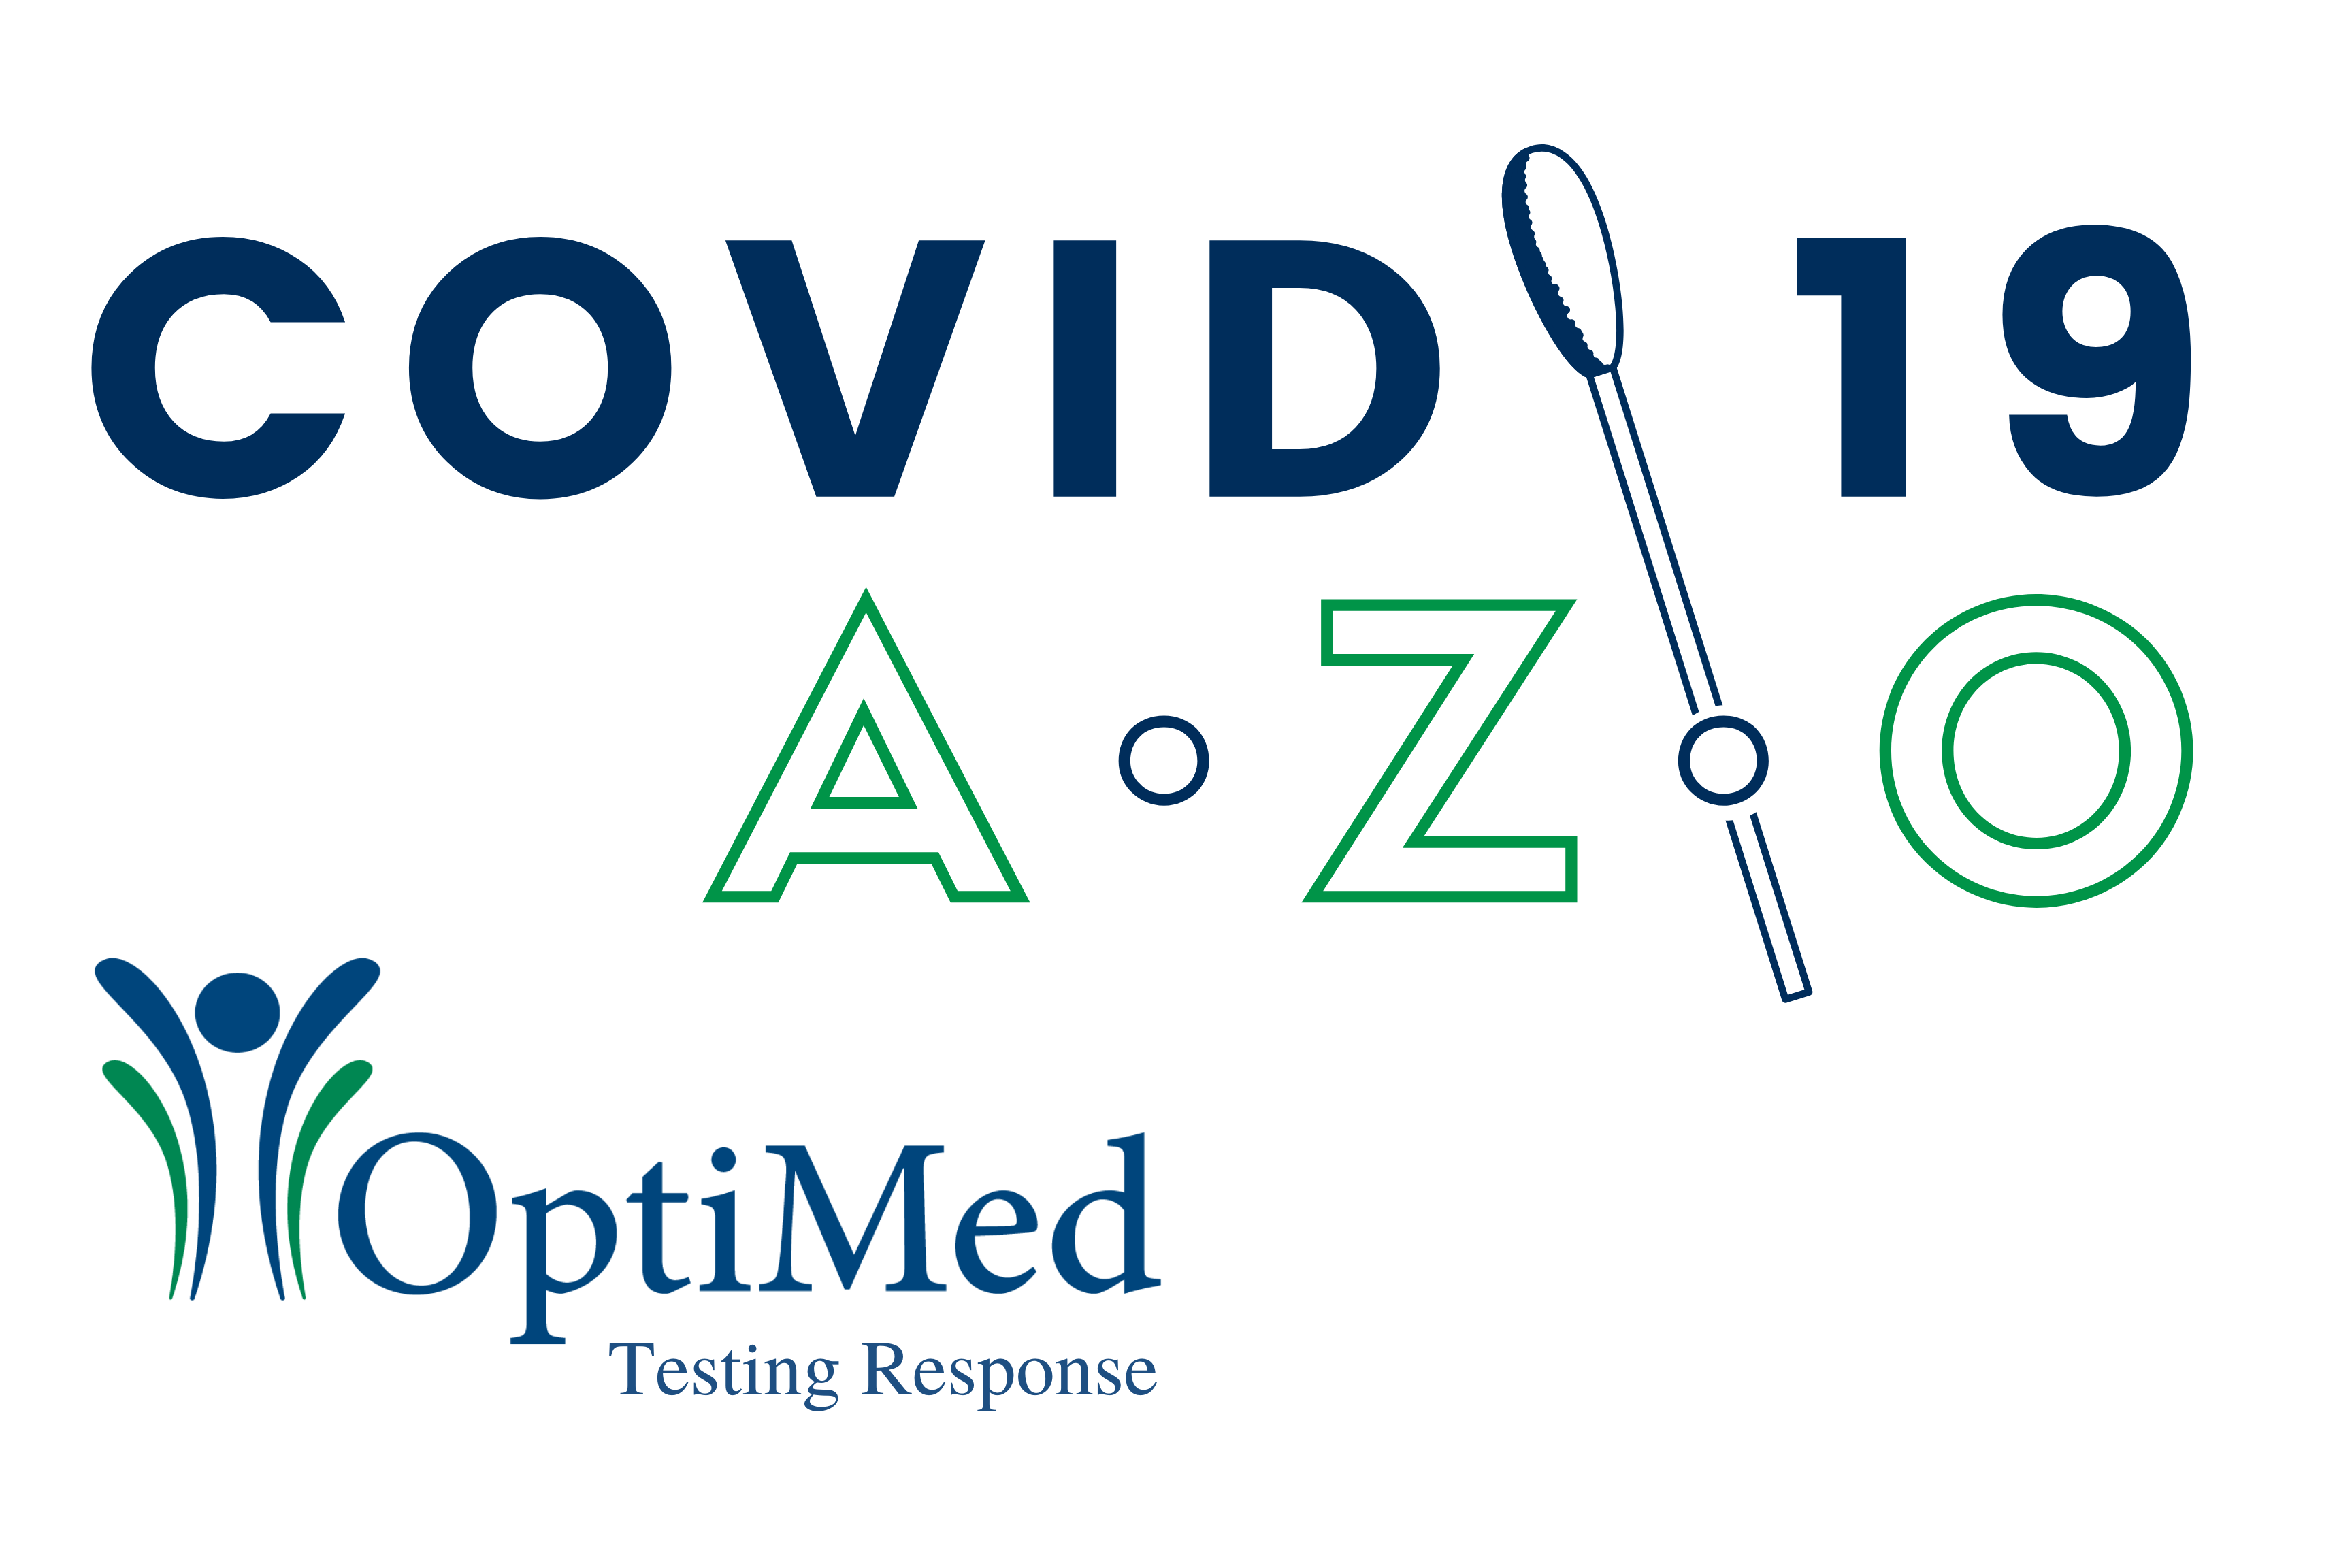 AZO and OptiMed Partner to Provide COVID-19 Testing at the Airport